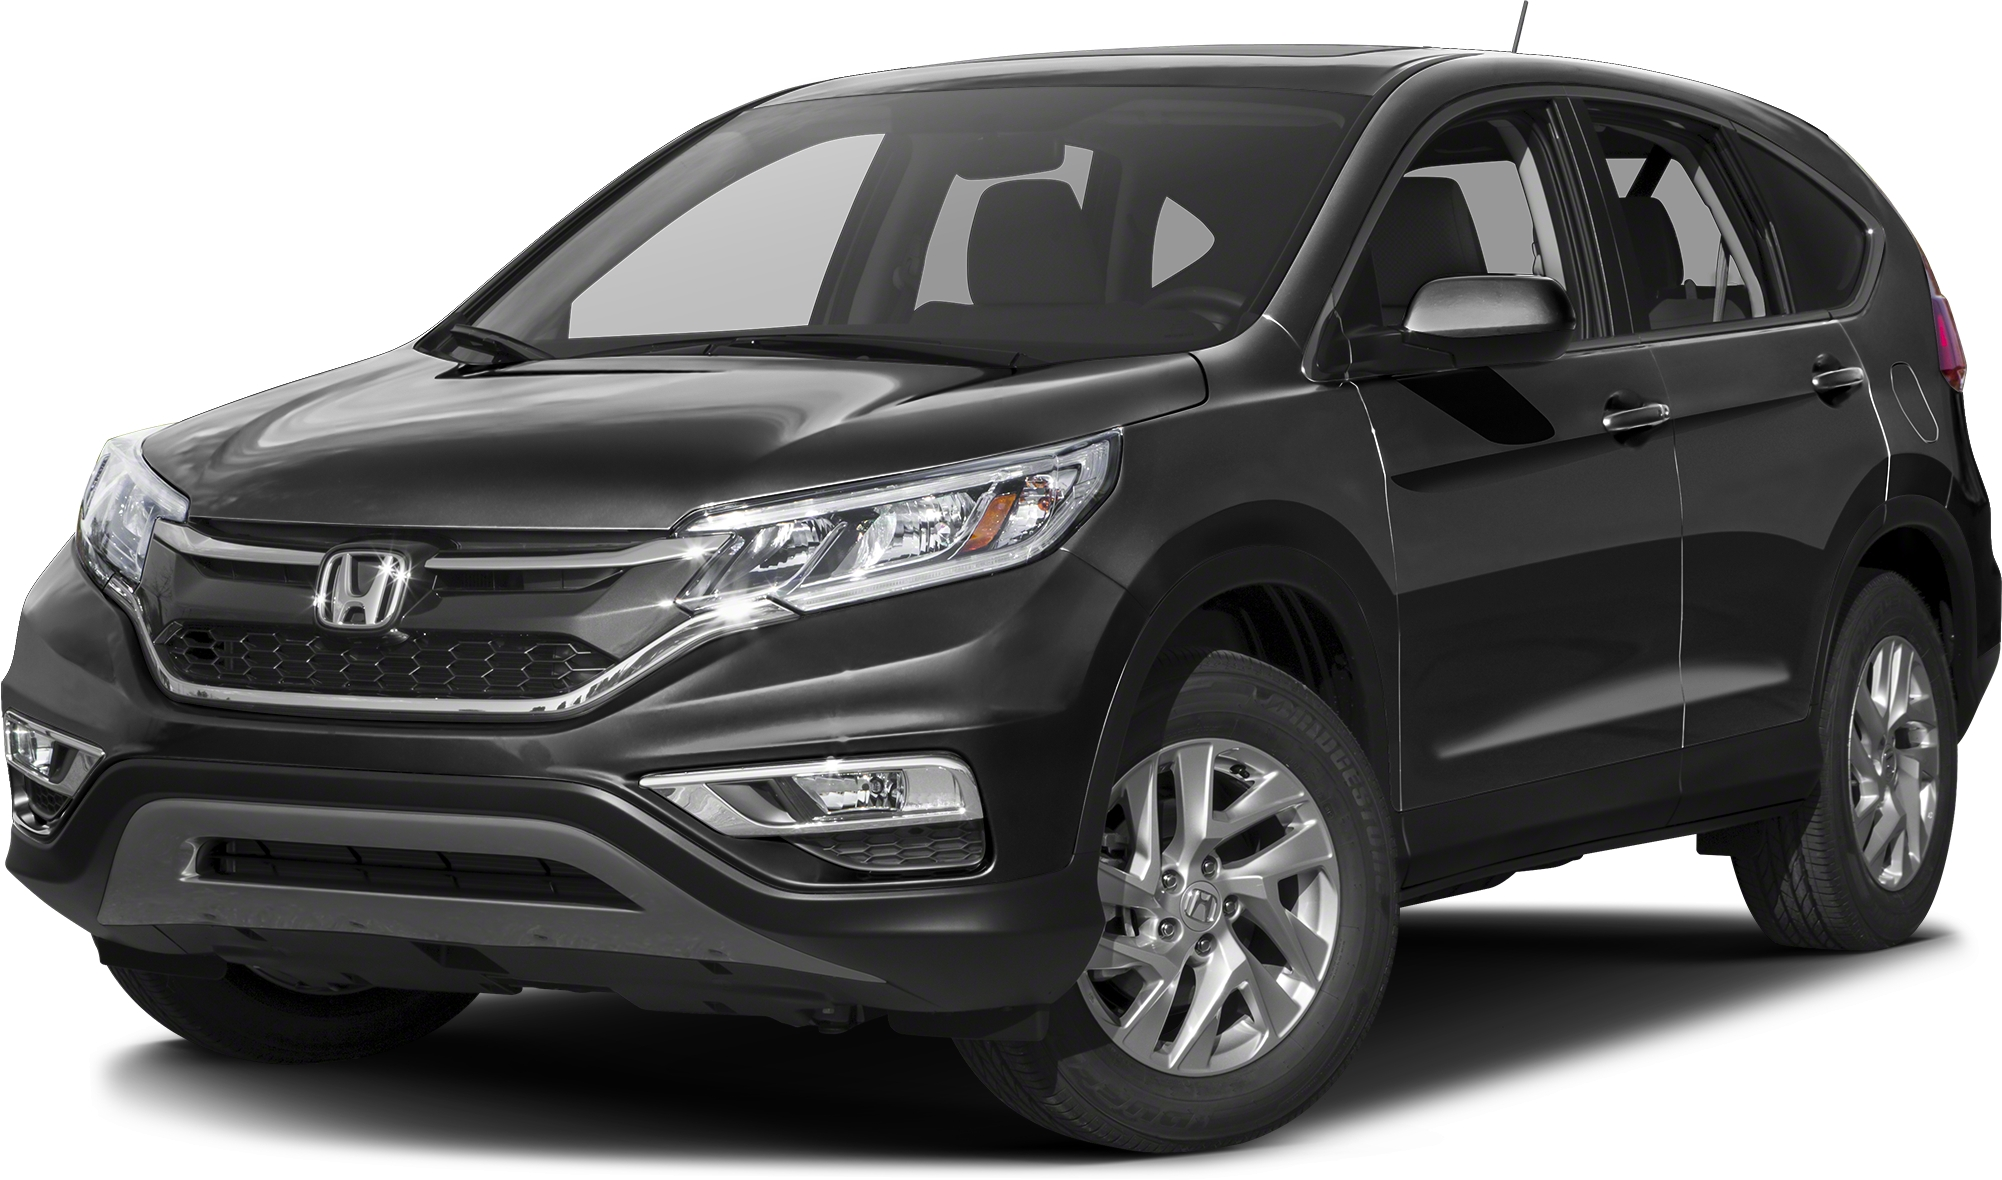 Moncton honda used cars for Honda used car dealers